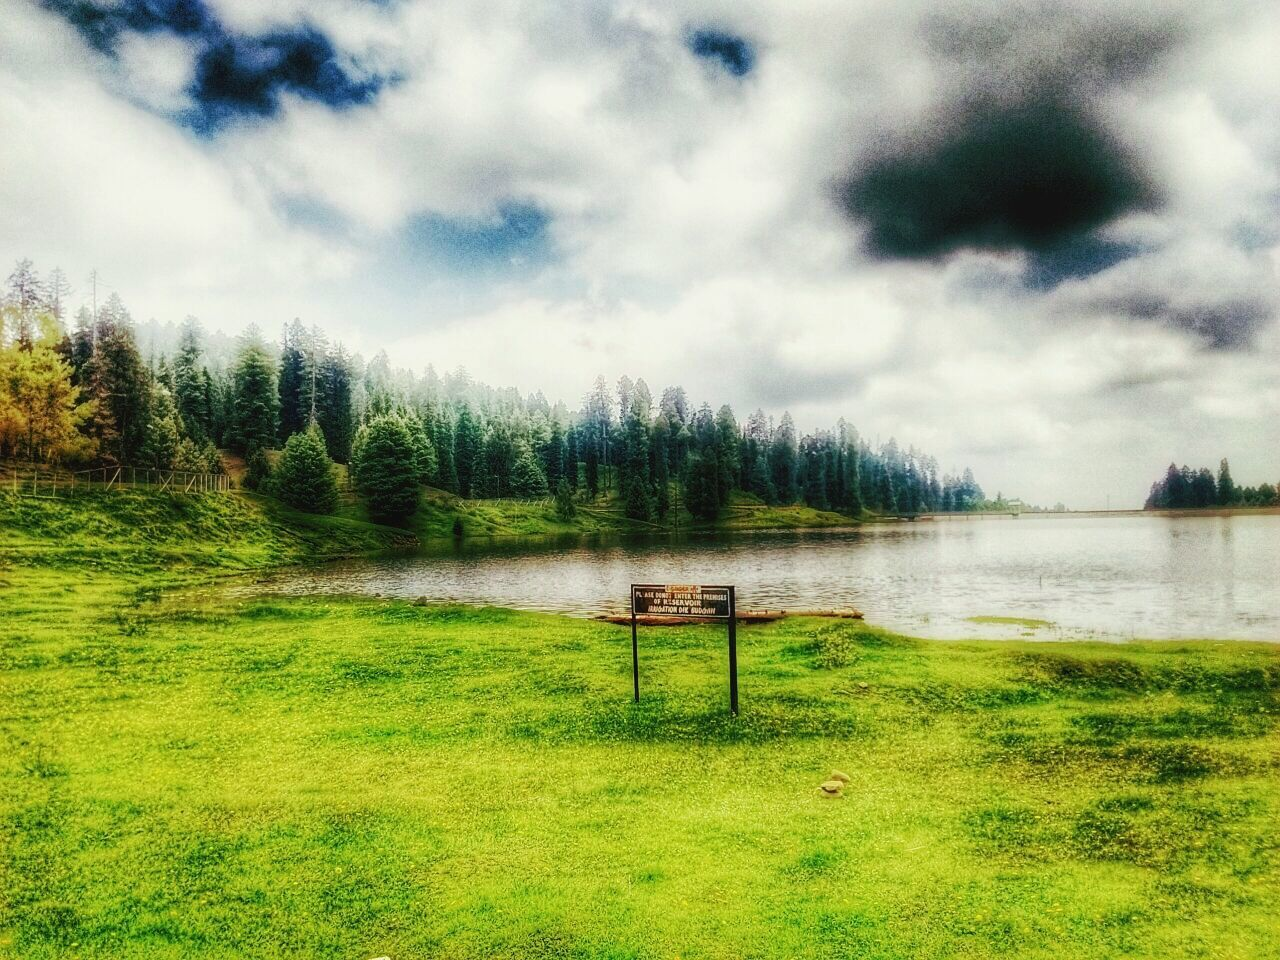 grass, nature, tree, scenics, cloud - sky, beauty in nature, tranquility, sky, green color, tranquil scene, no people, day, outdoors, water, landscape, mountain